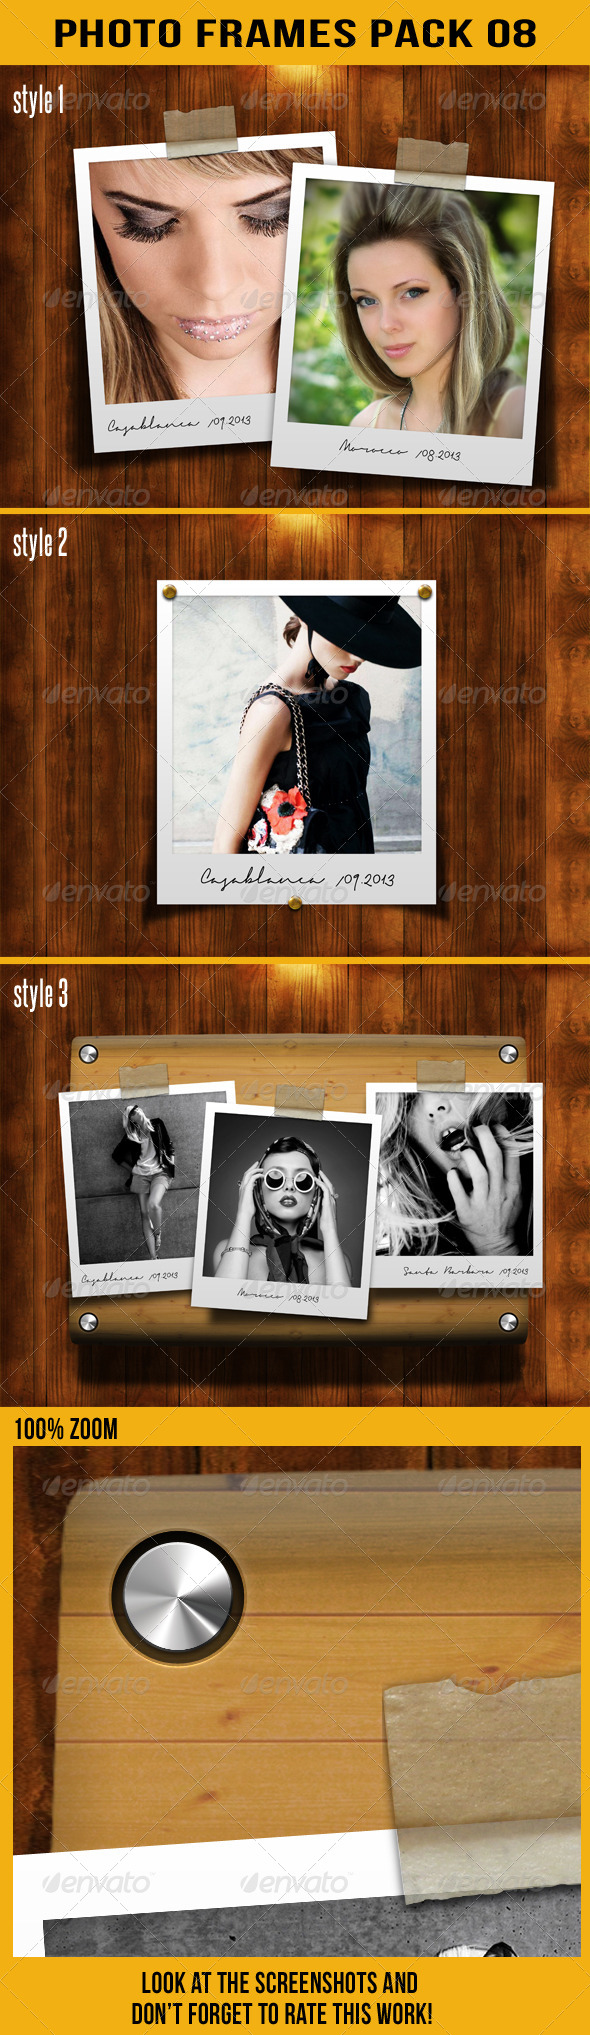 GraphicRiver Photo Frames Pack 08 5915028